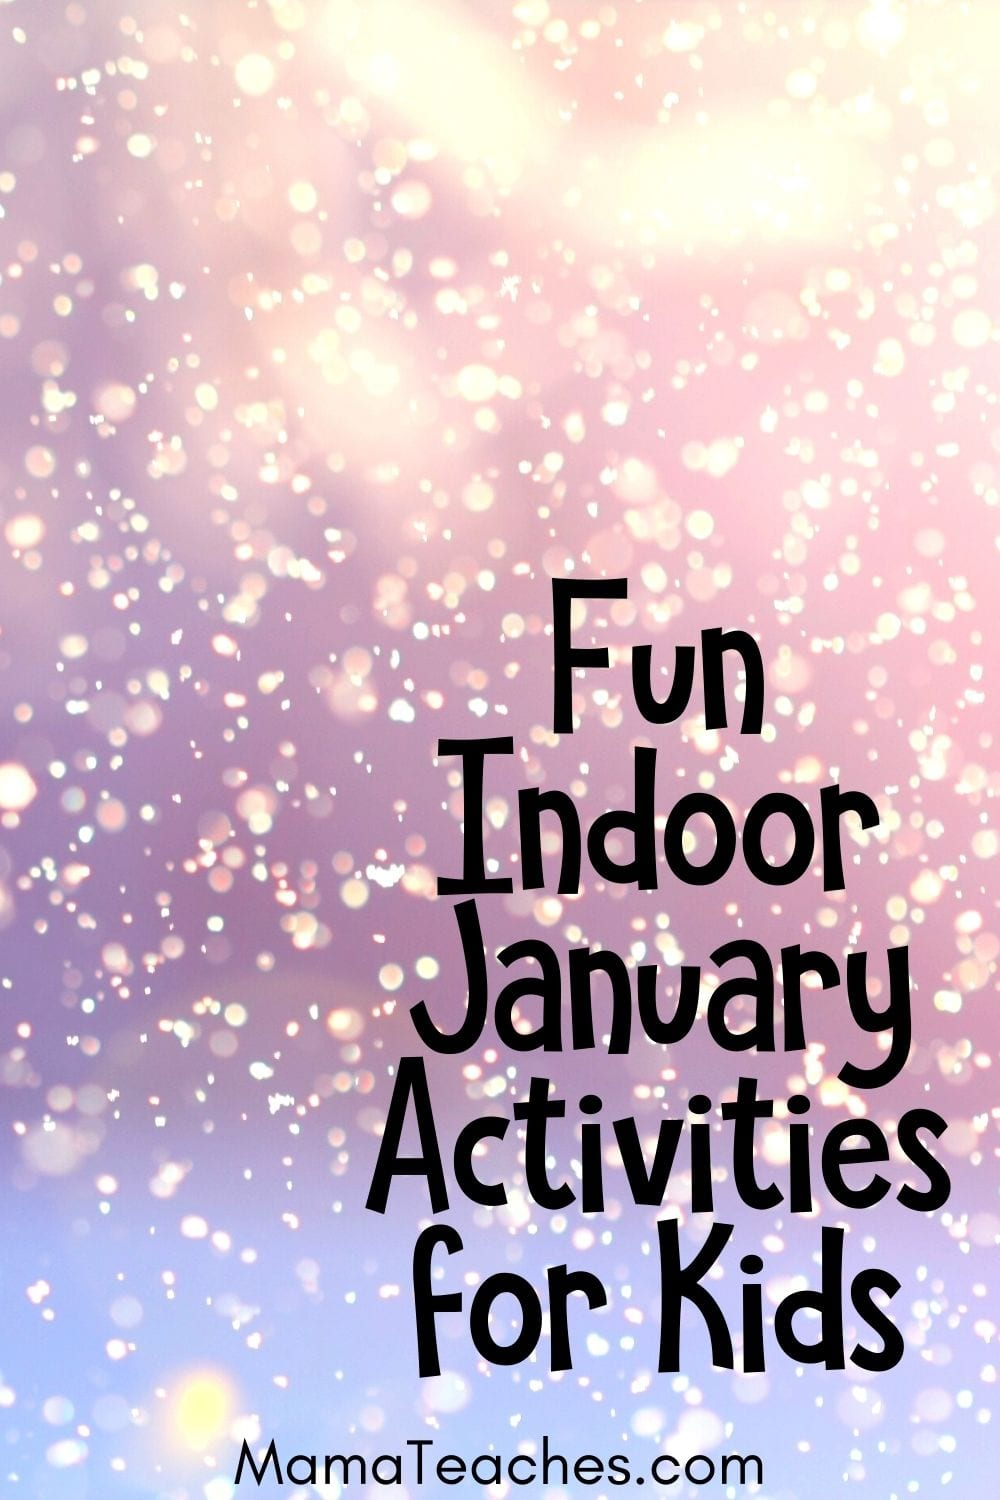 Fun Indoor January Activities for Do with Kids